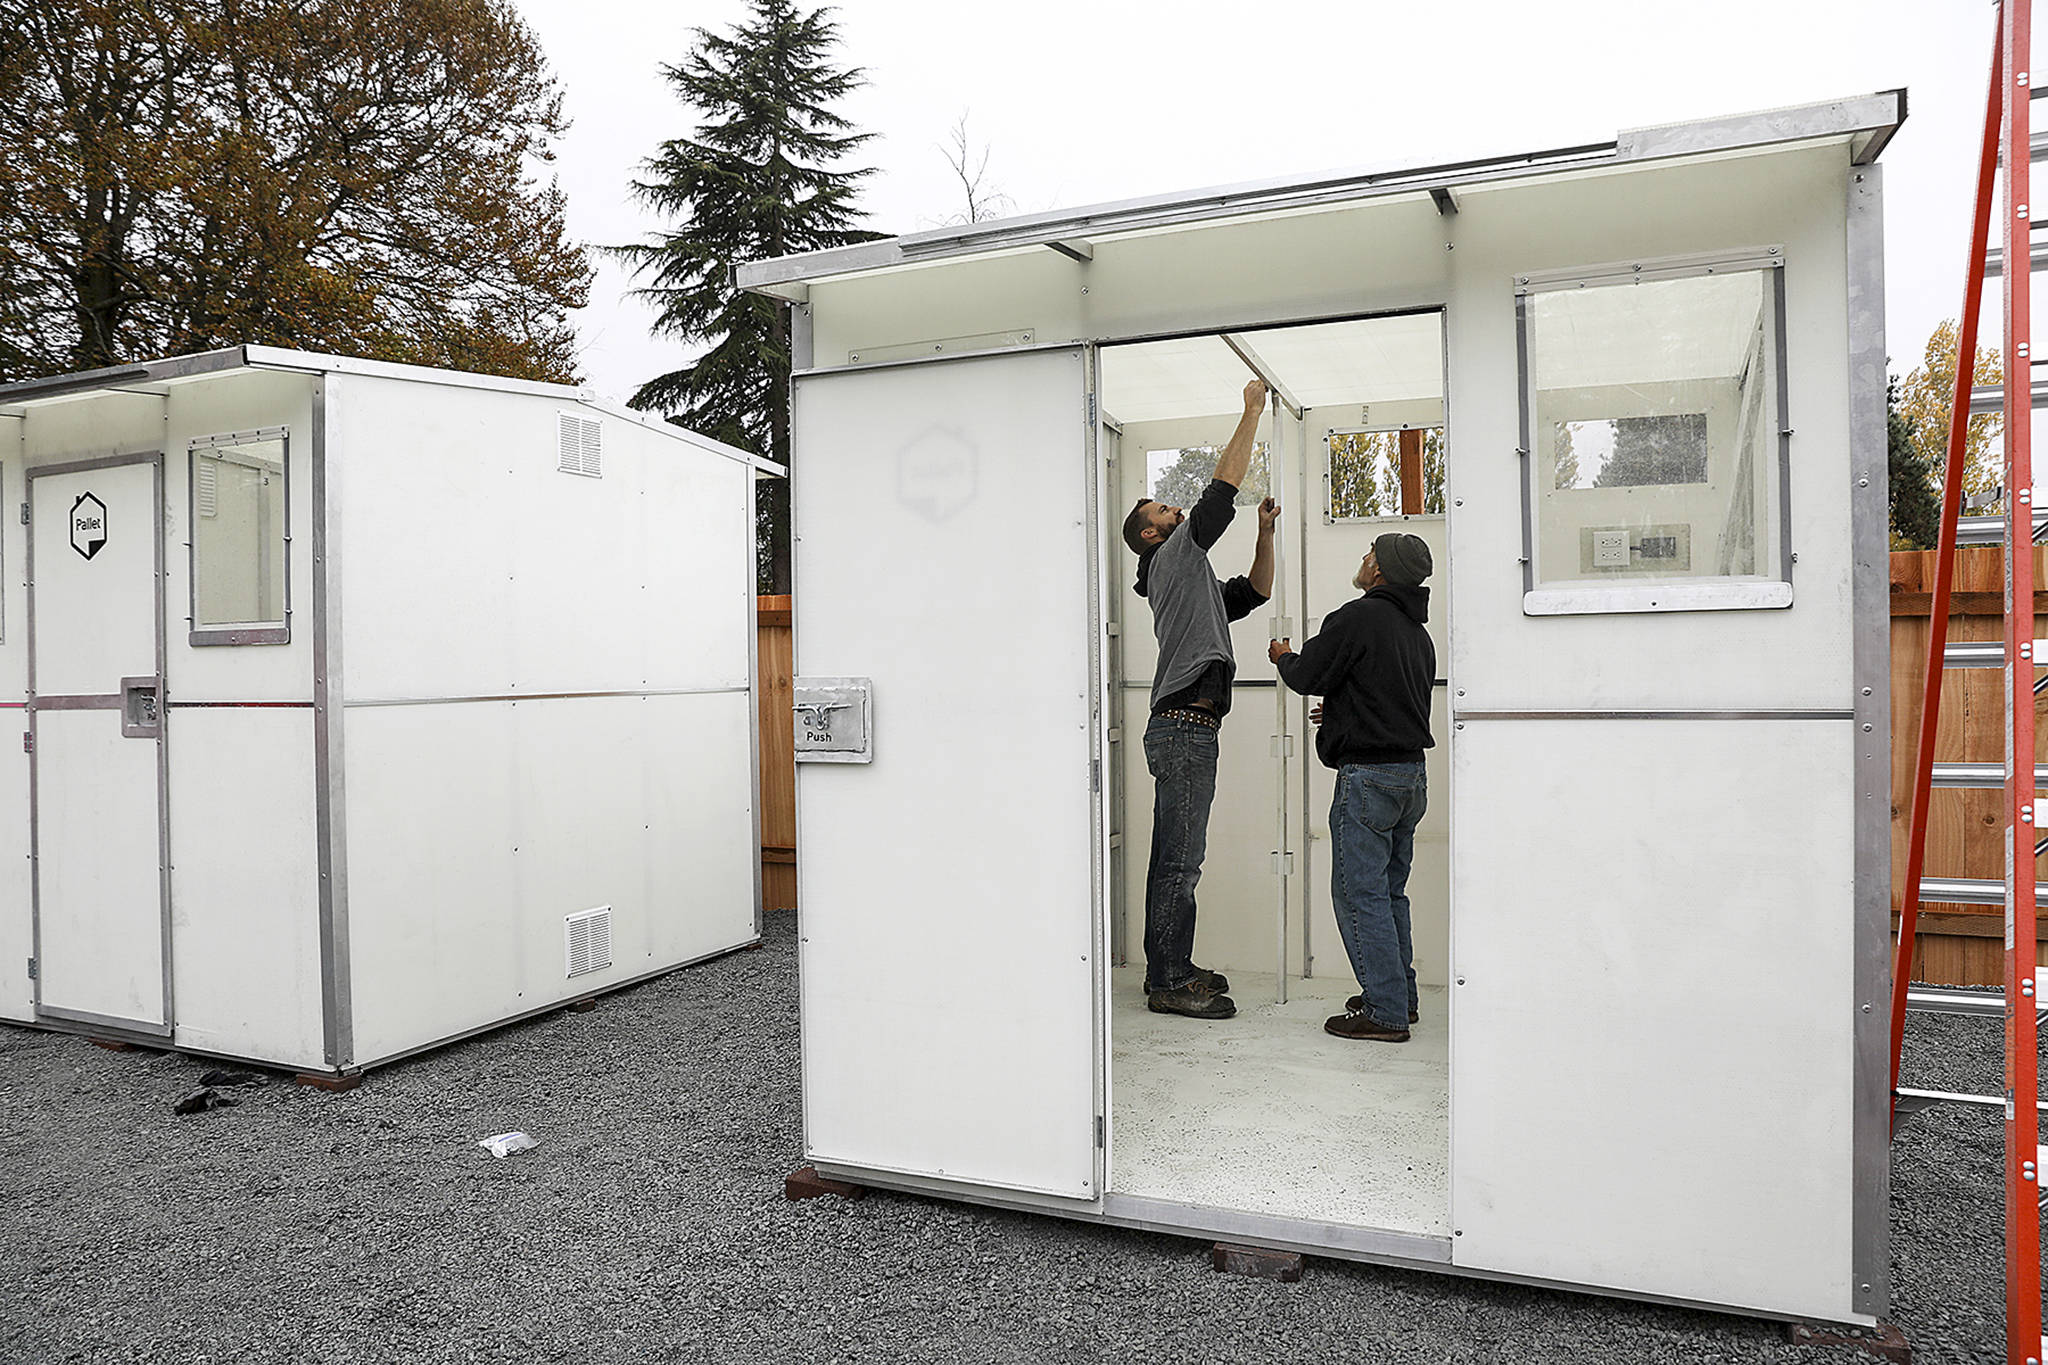 "Six tiny homes <a href=""https://www.heraldnet.com/news/first-authorized-tiny-home-village-opens-in-snohomish-county/"" target=""_blank"">were installed</a> on the grounds of Good Shepherd Baptist Church in Lynnwood on Oct. 25. (Lizz Giordano / The Herald)"